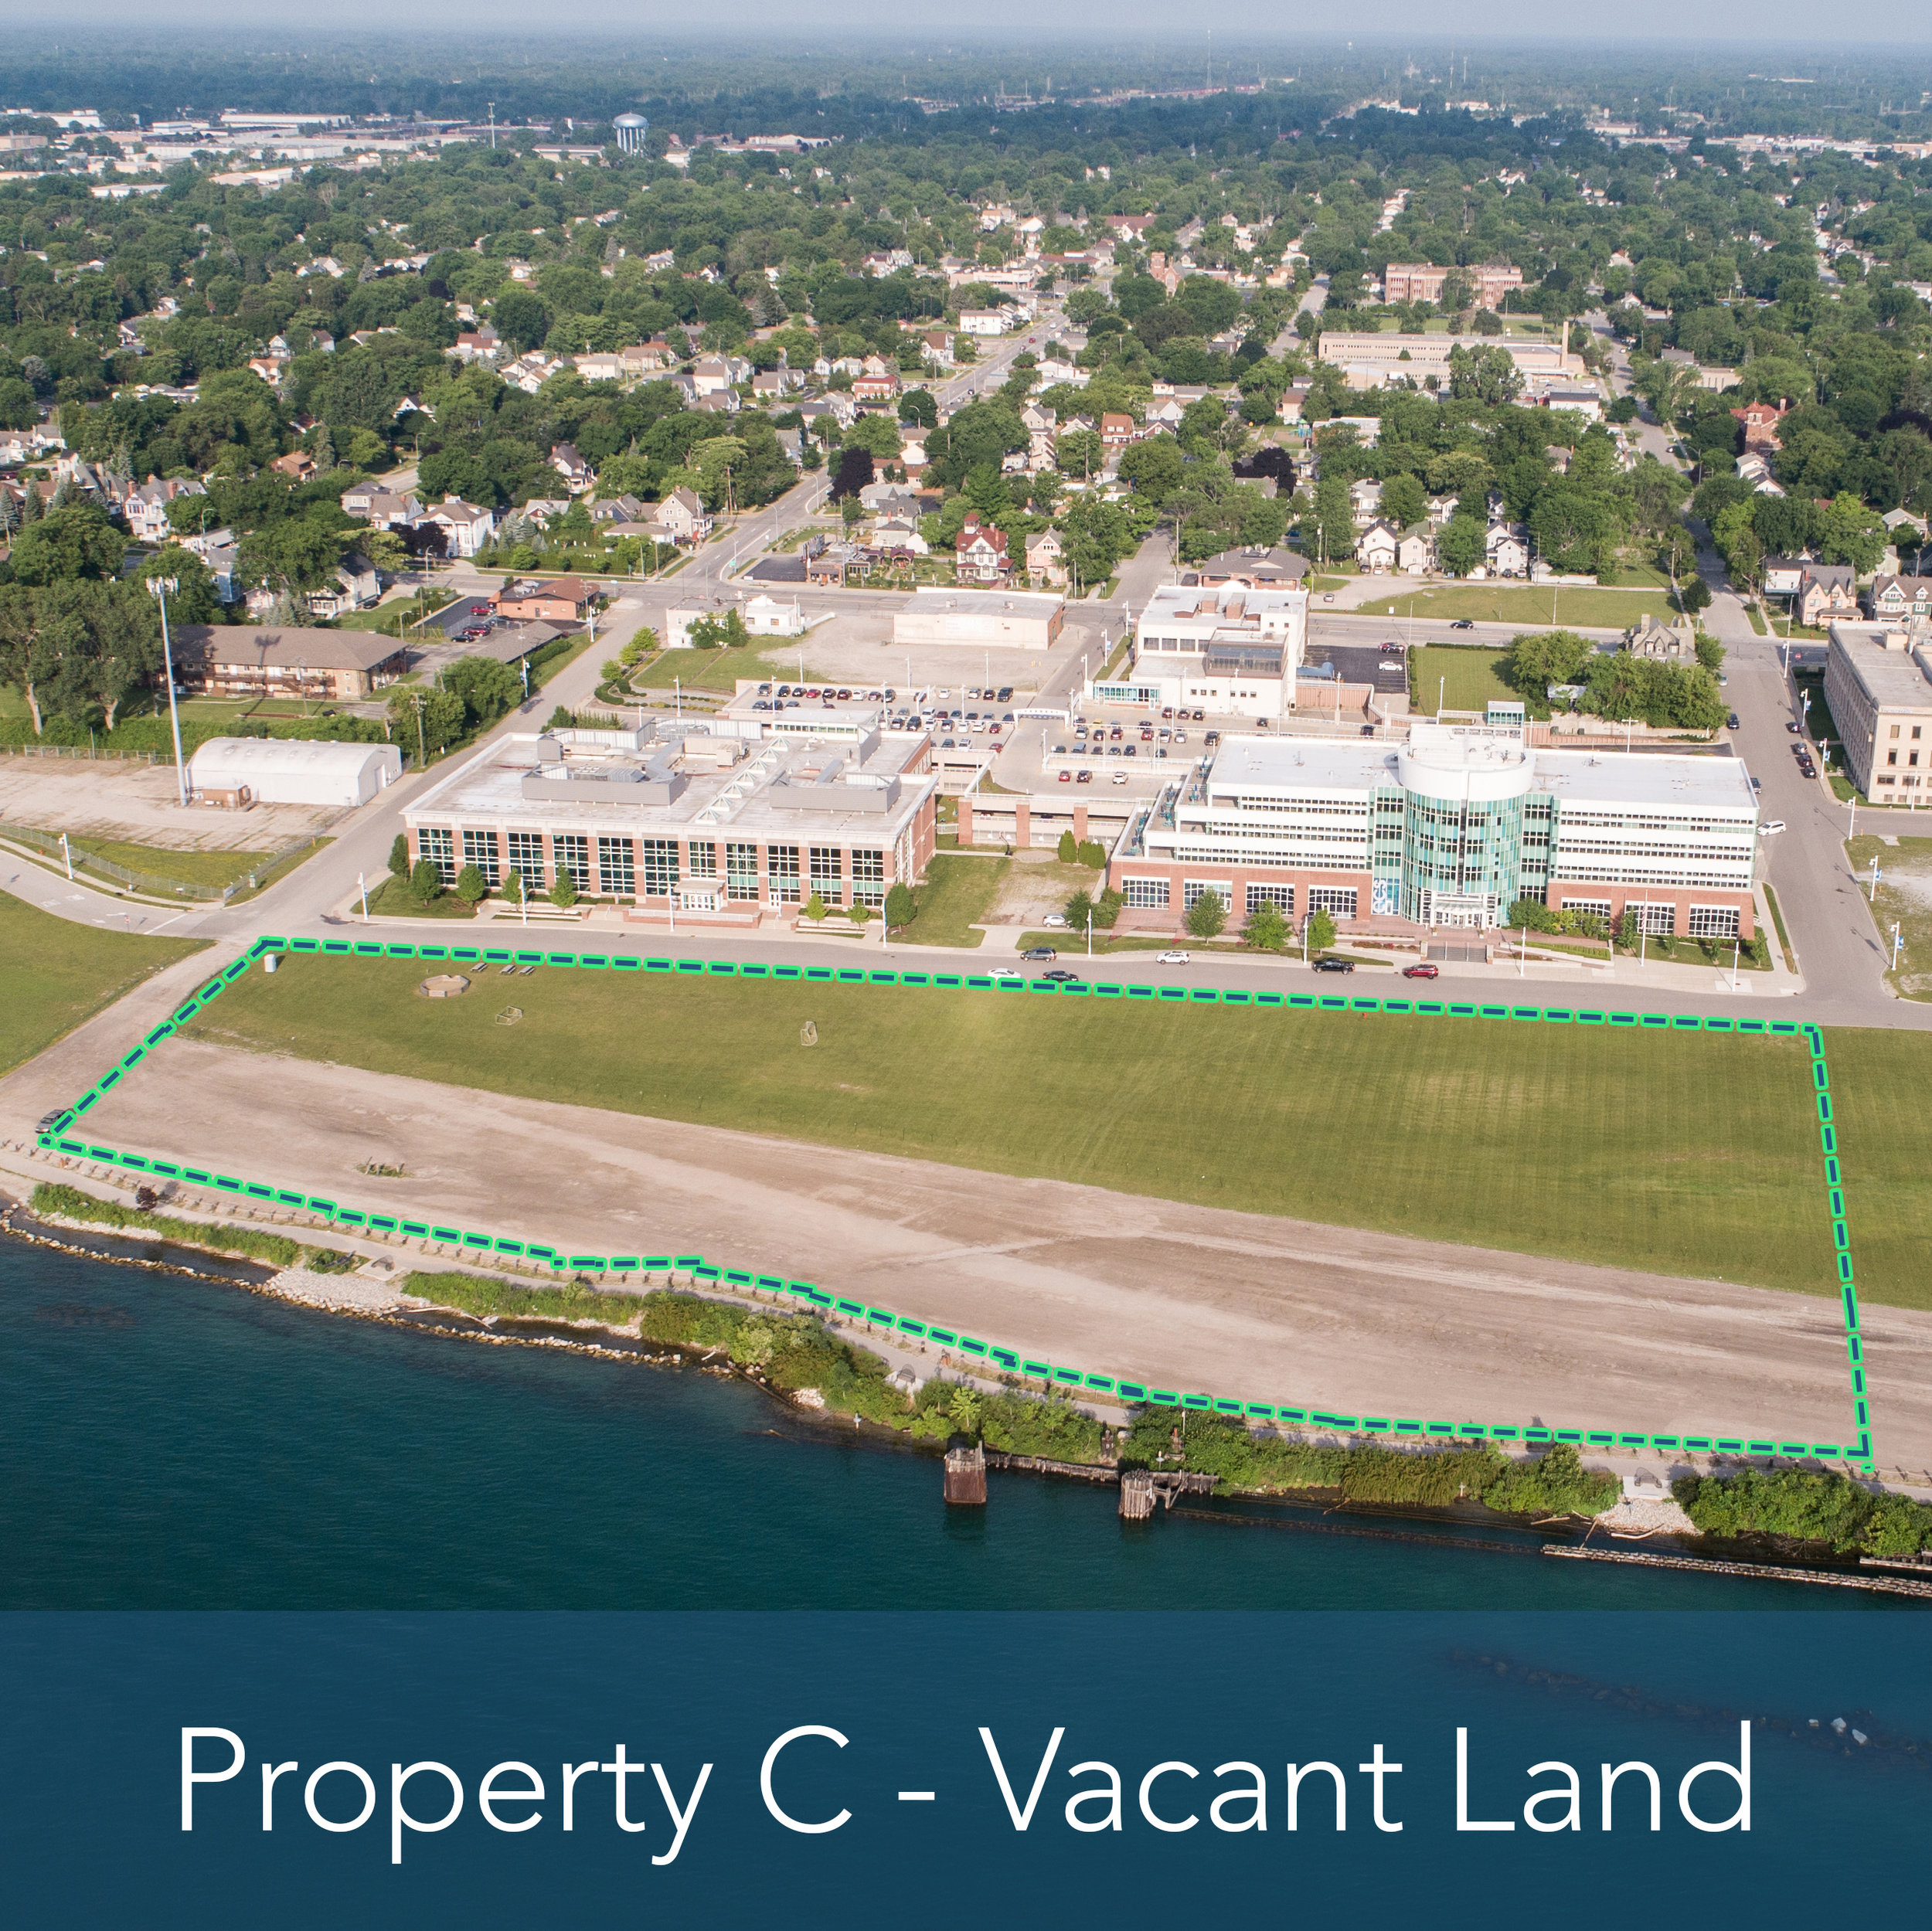 Property C - 5.7 Acre Vacant Lot   Waterfront property adjacent to multiple developed properties.